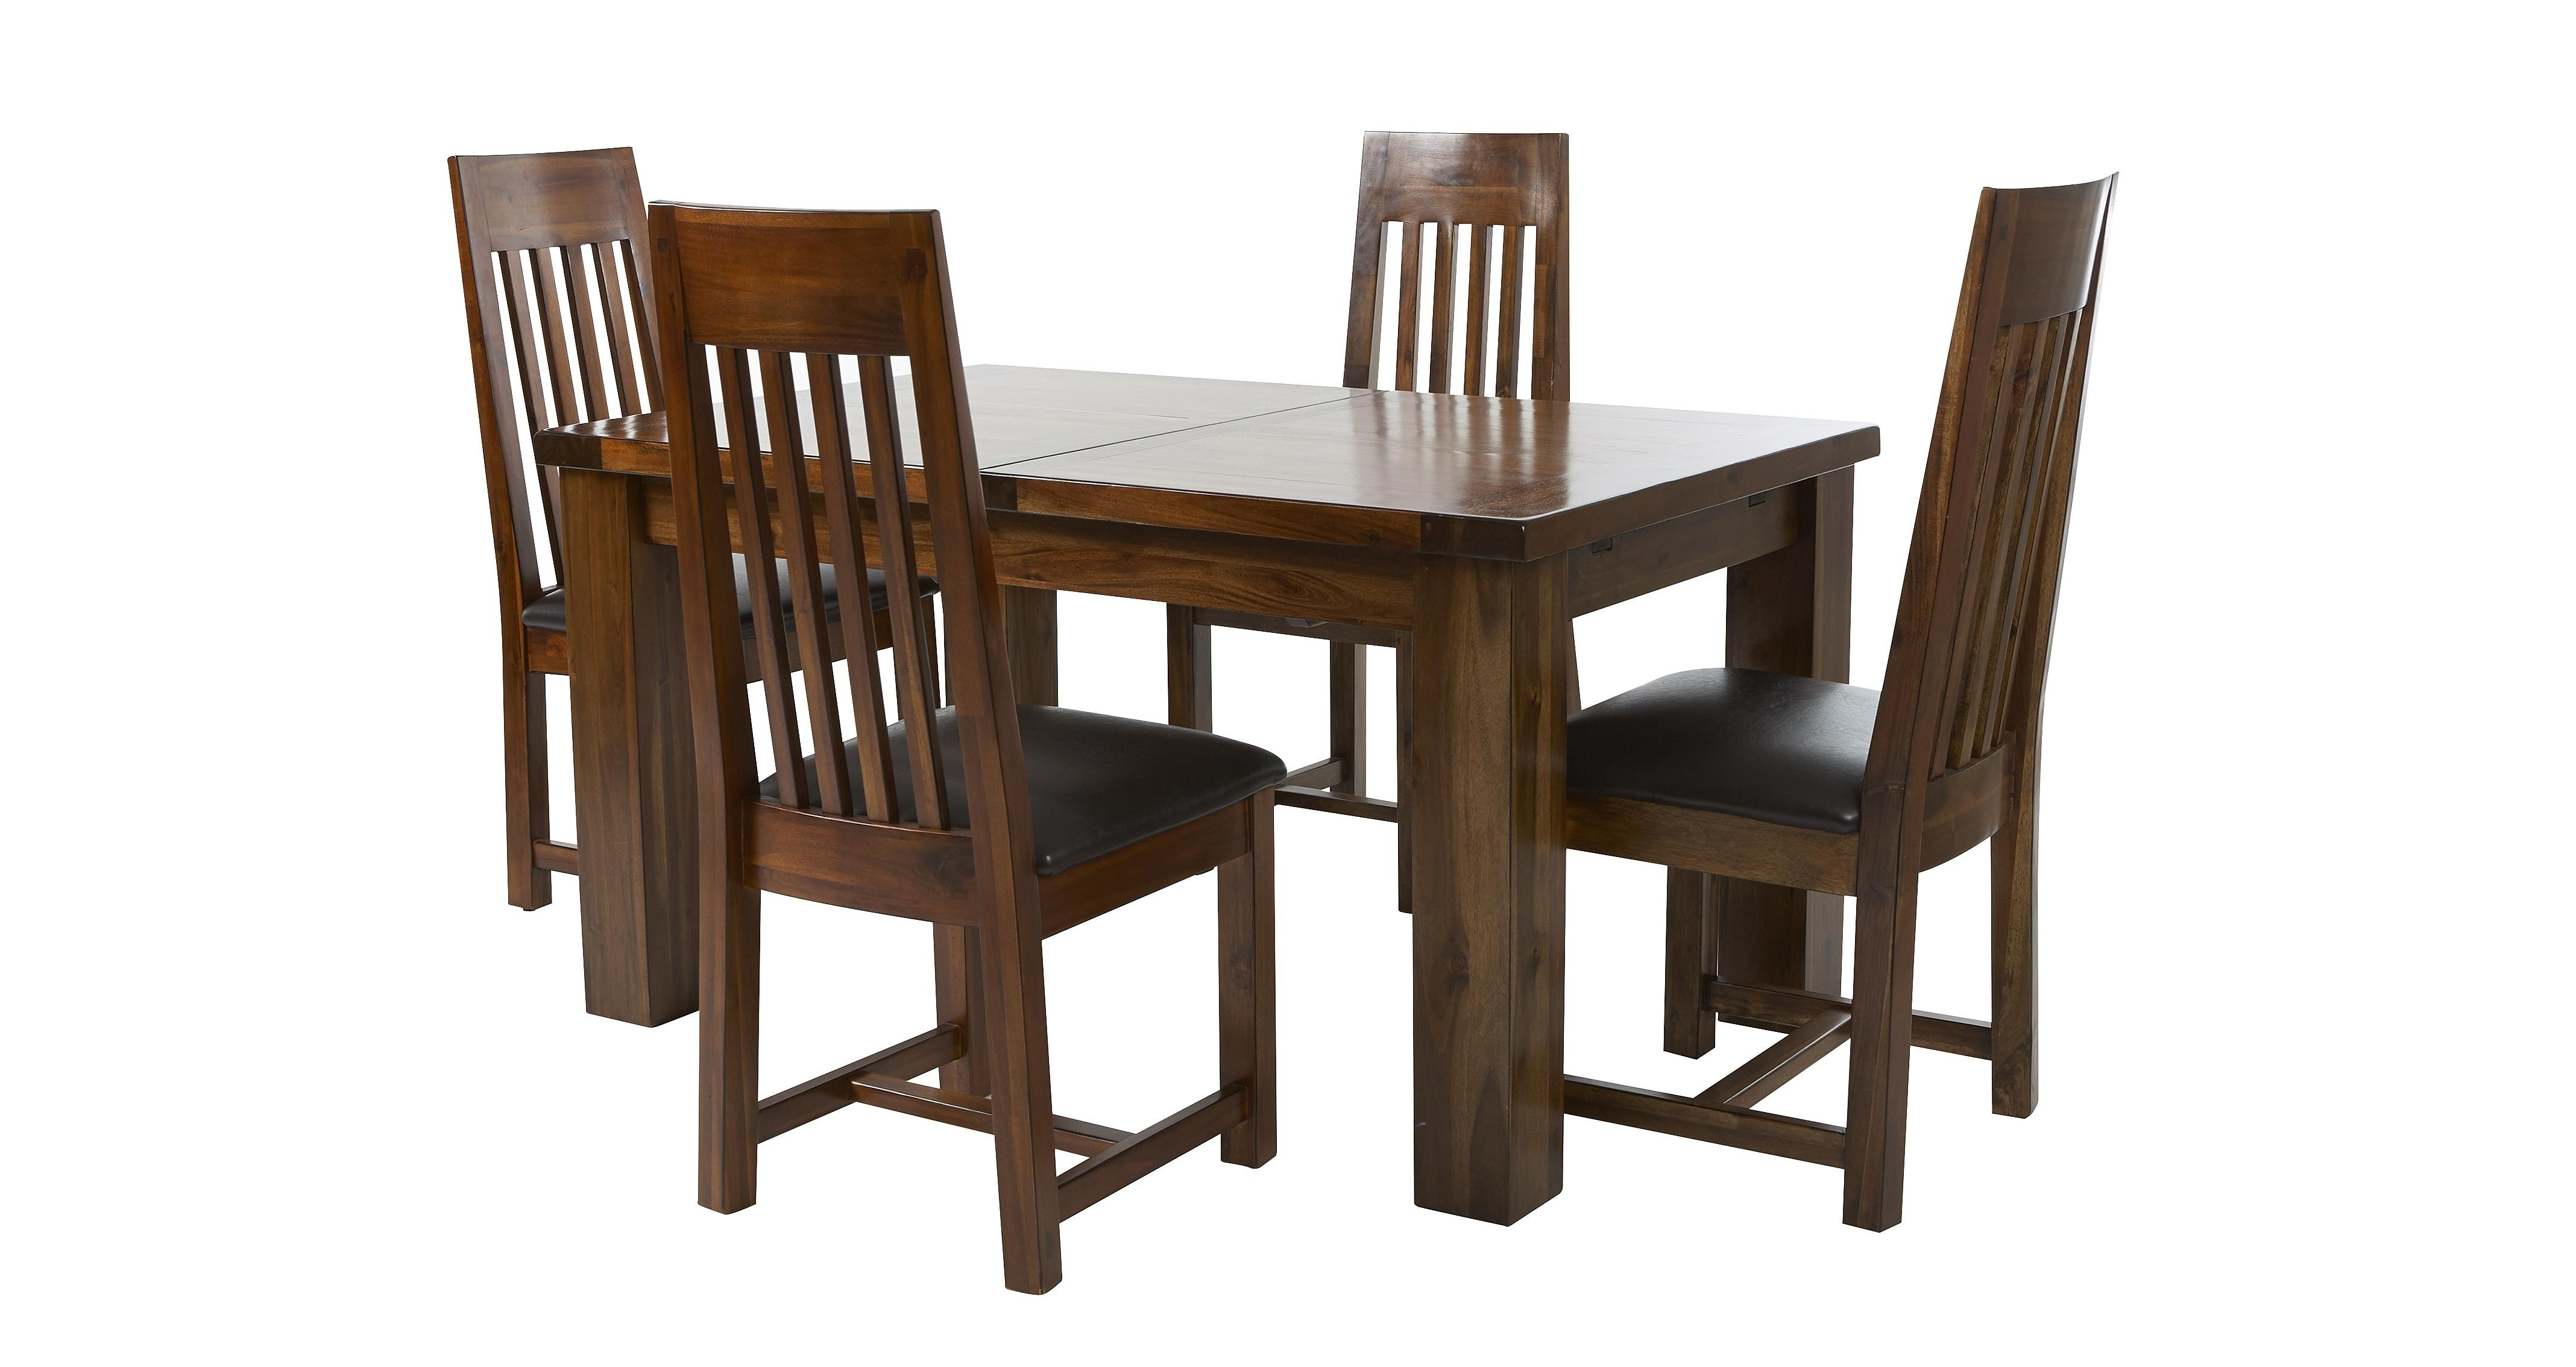 Well Known Extension Dining Table Seats 14 Best Of Shiraz Small Extending Intended For Extending Dining Tables With 14 Seats (View 24 of 25)